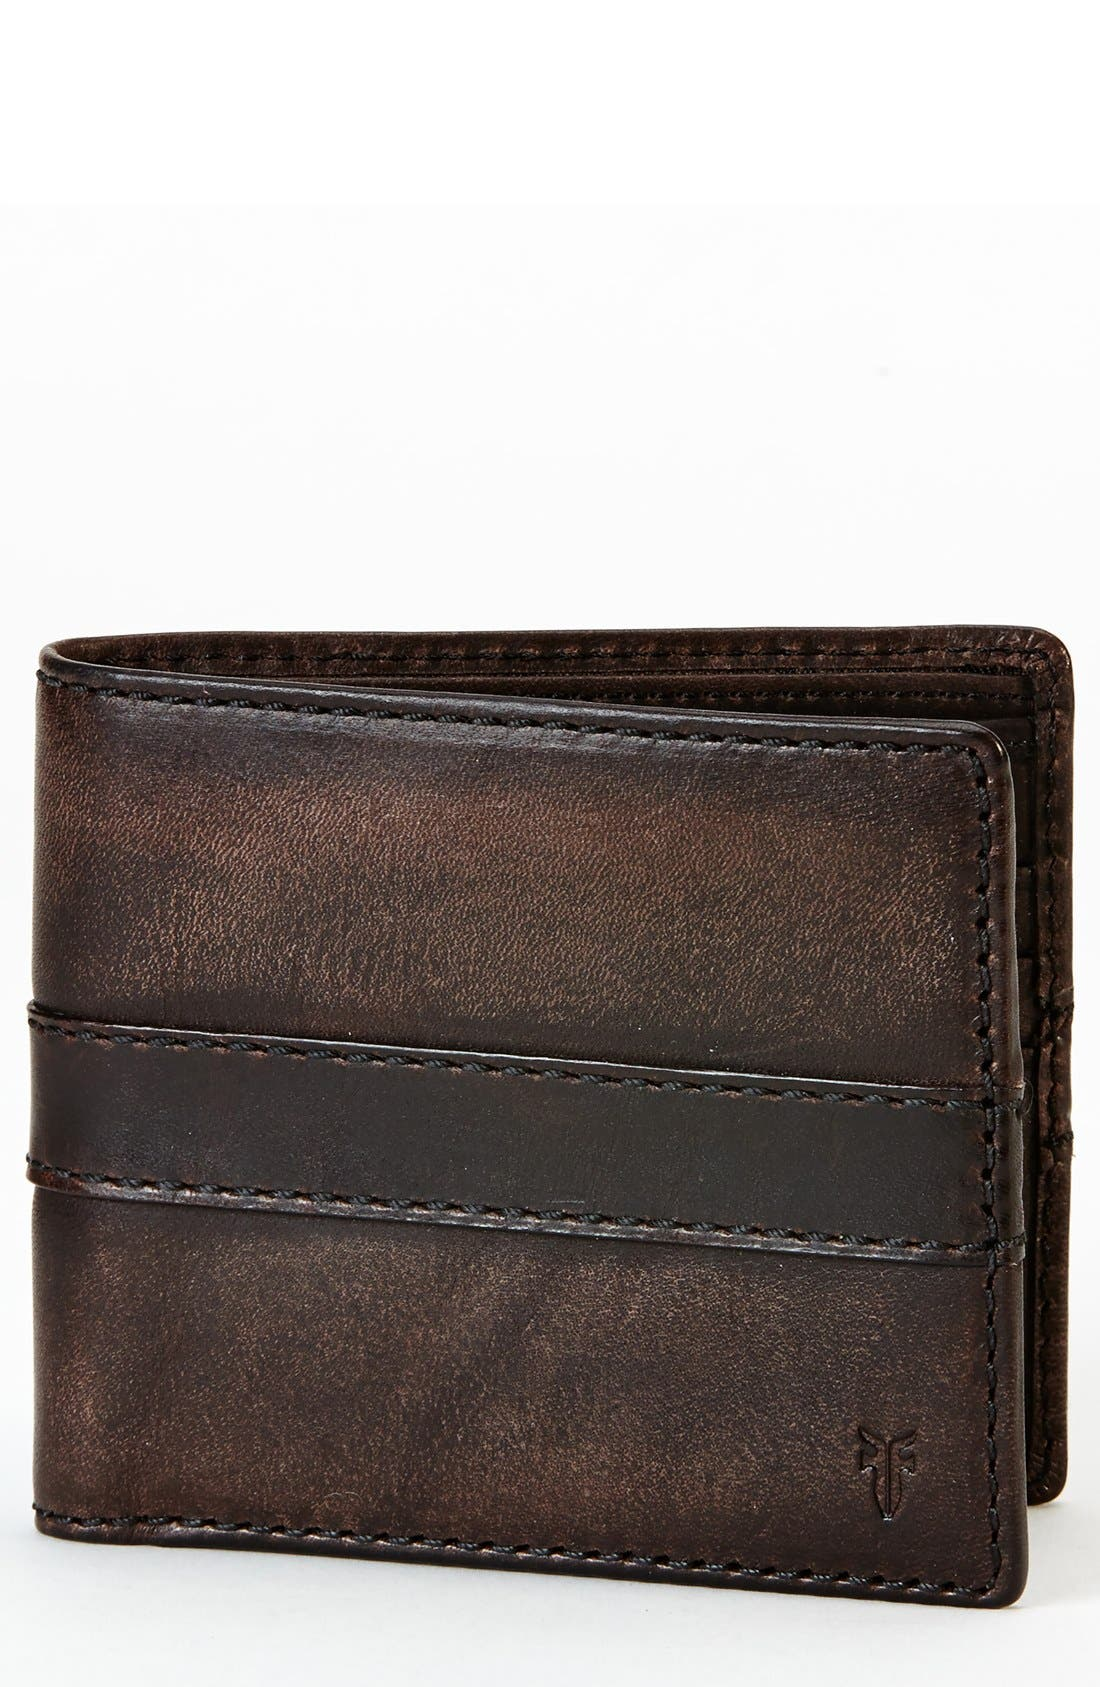 'Oliver' Leather Billfold Wallet,                             Main thumbnail 1, color,                             Dark Brown